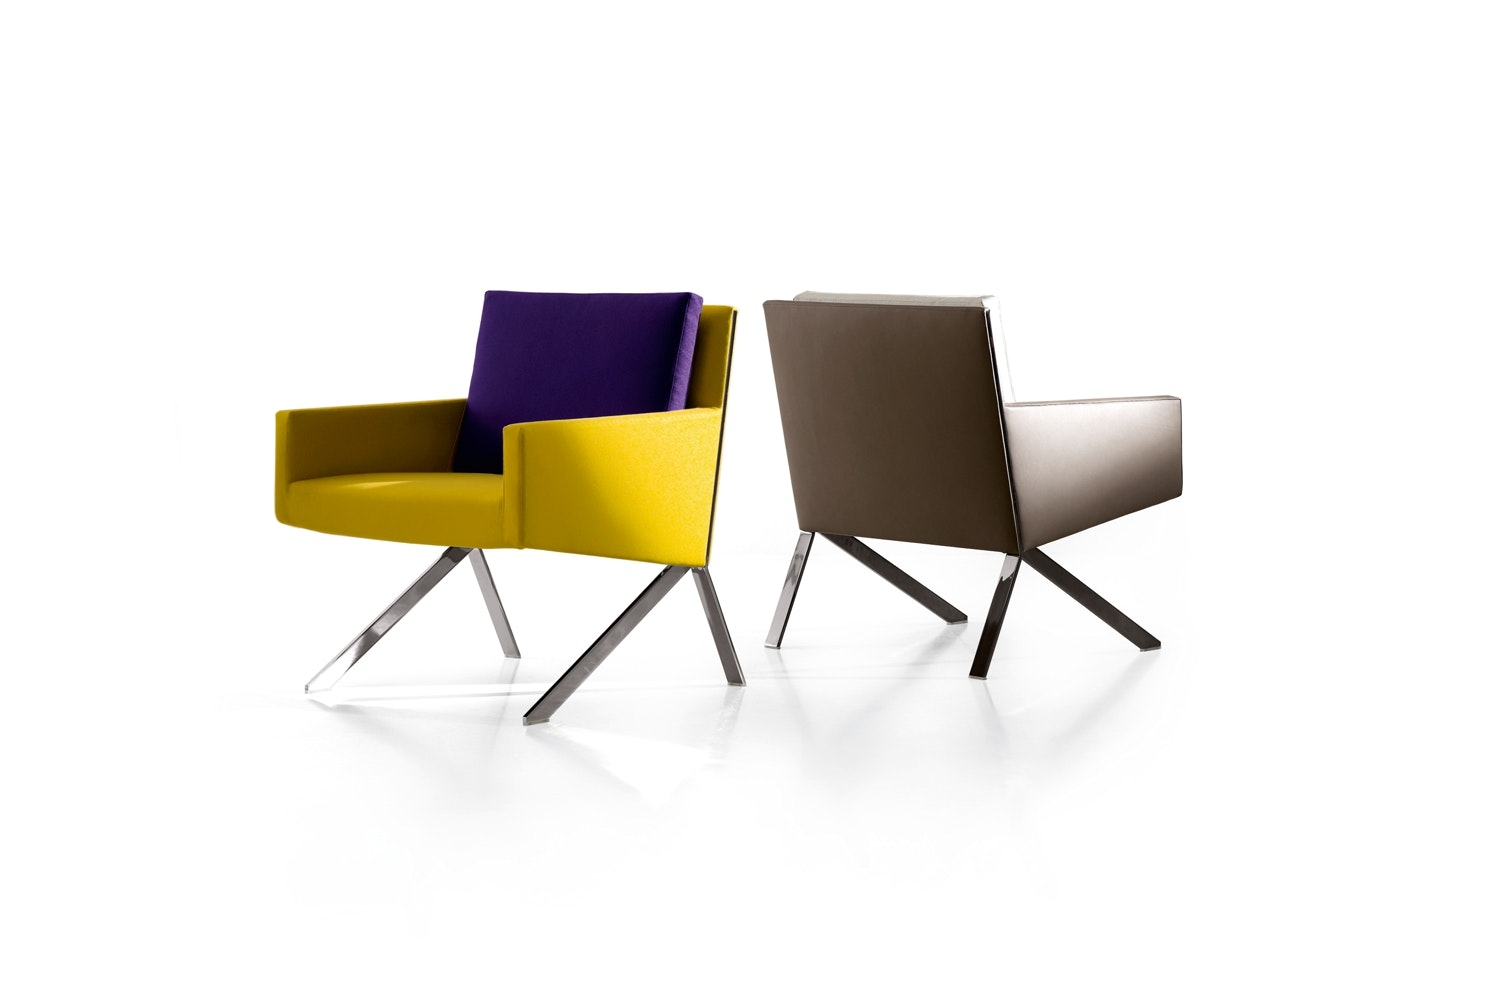 Theo Armchair by Vincent Van Duysen for B&B Italia